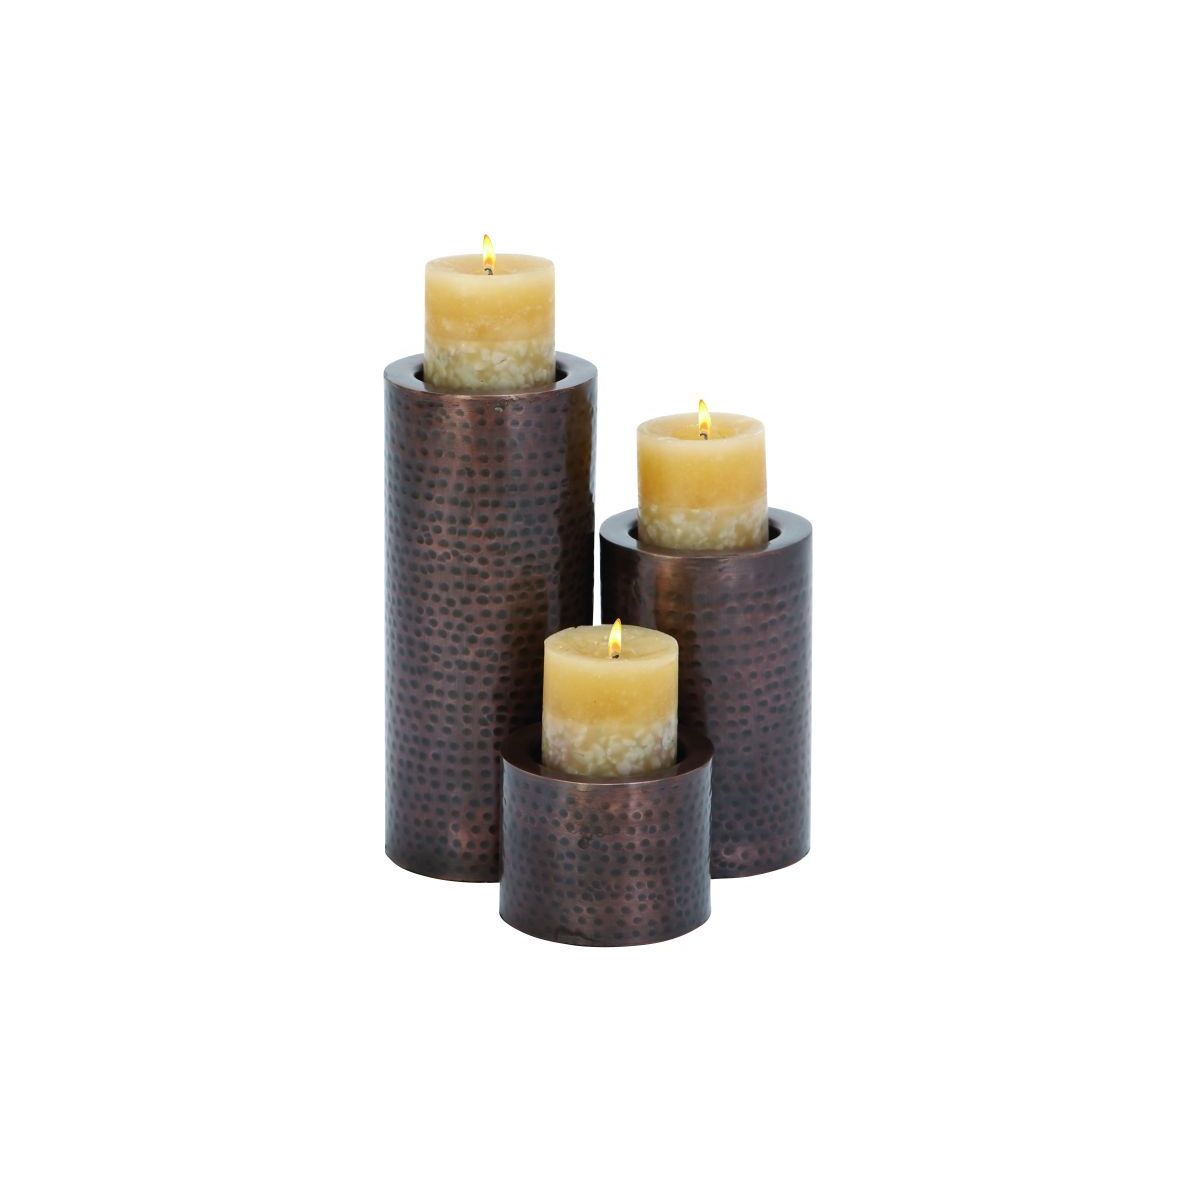 Metal Candle Holder Set of 3 (11 inches x 7inches x 4 inches)